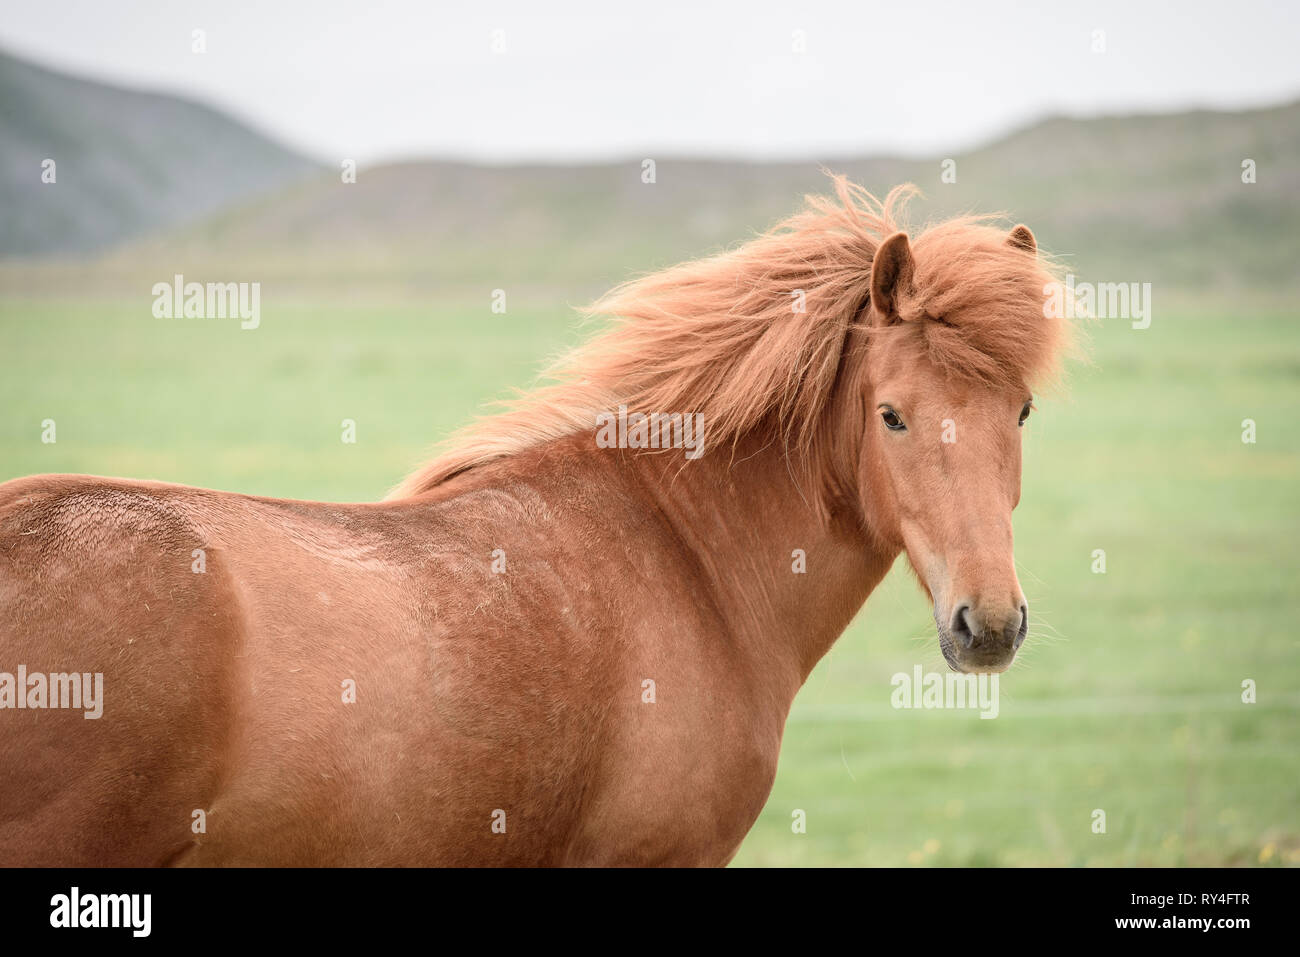 Chestnut horse with beautiful hairdo. Pasture in Iceland - Stock Image